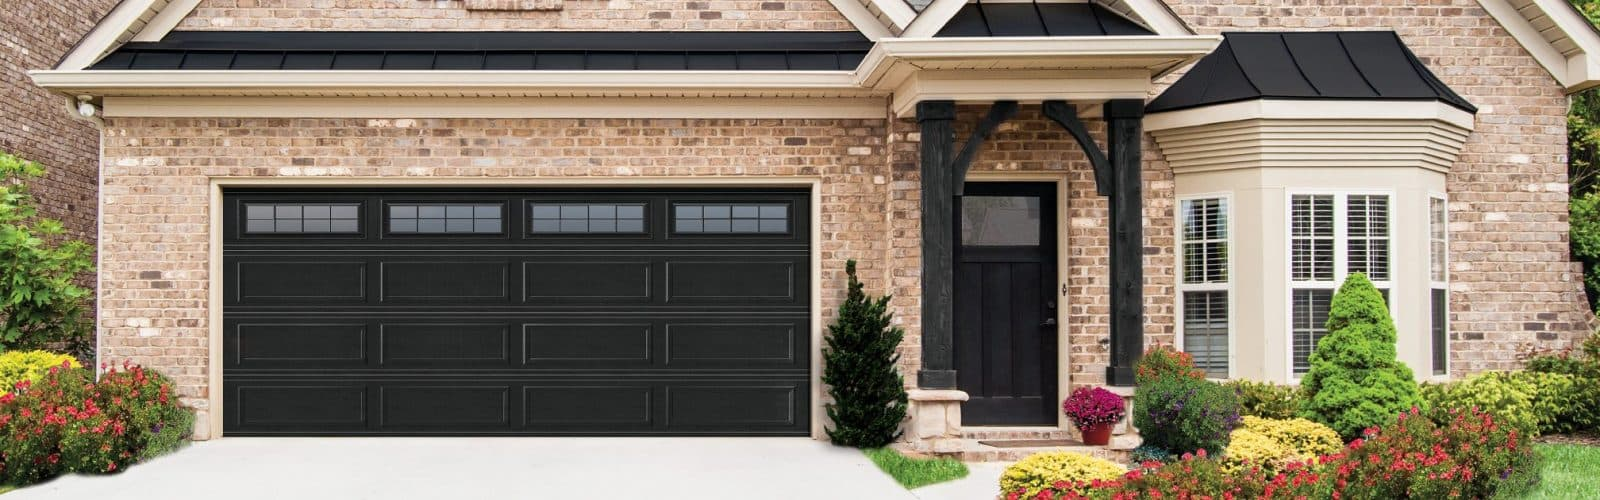 garage door repair new haven ct